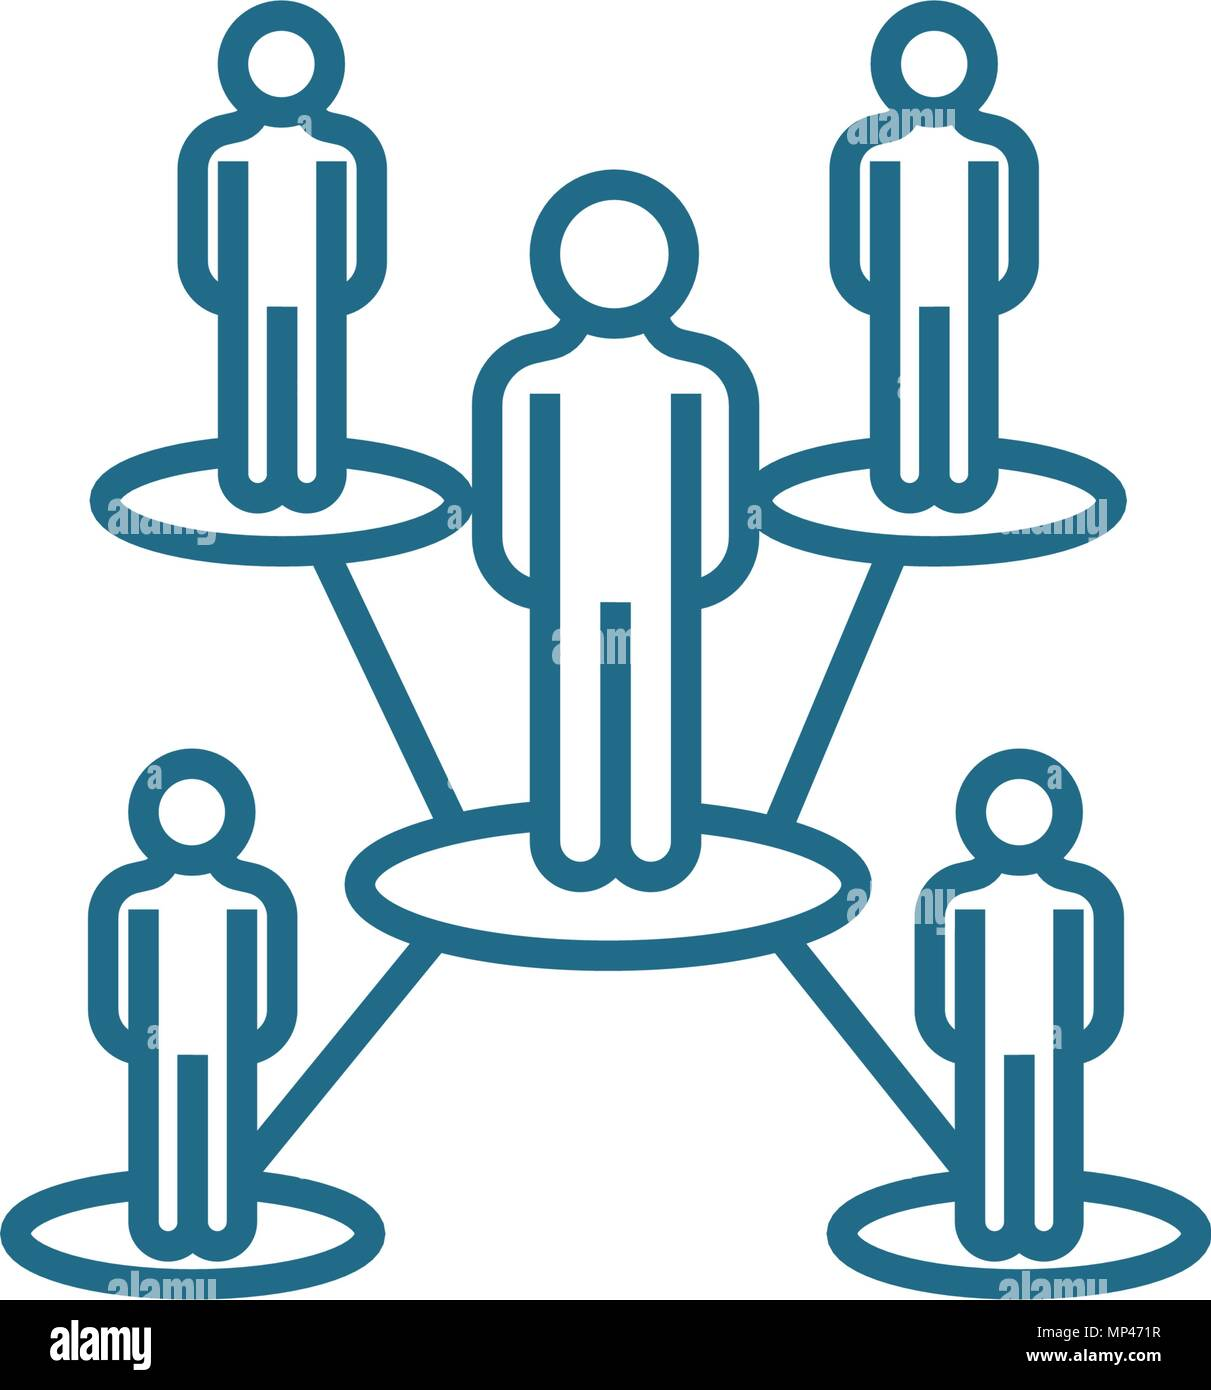 organizational structure linear icon concept organizational structure line vector sign symbol illustration stock vector image art alamy https www alamy com organizational structure linear icon concept organizational structure line vector sign symbol illustration image185719459 html